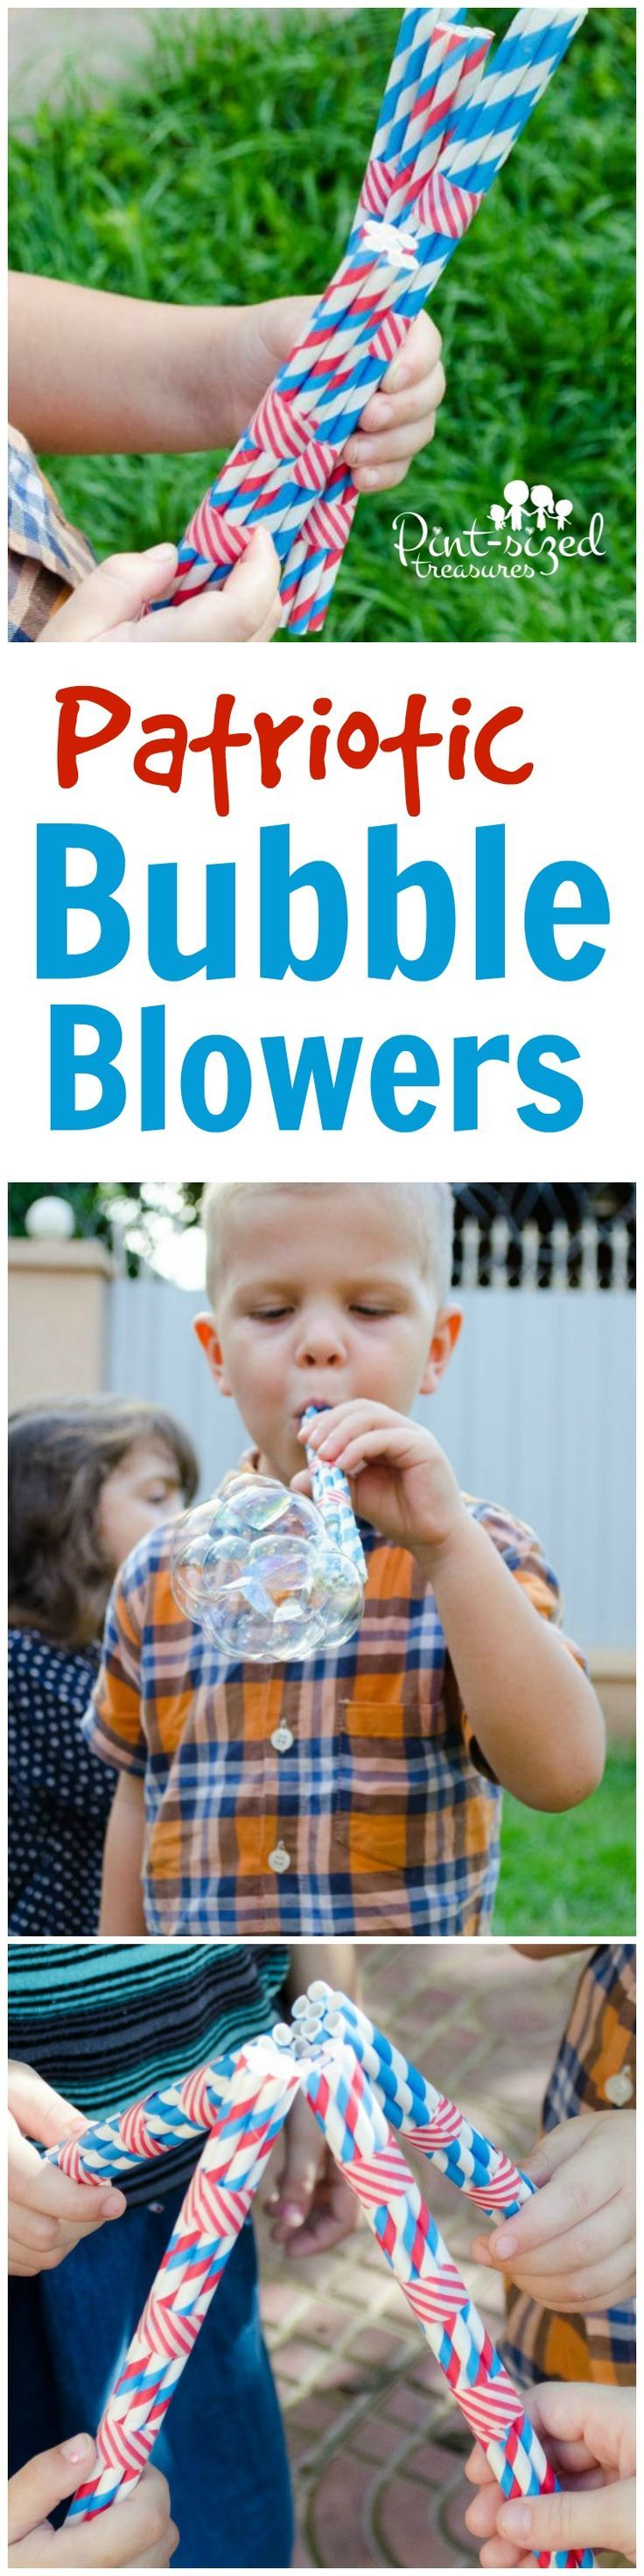 Patriotic Bubble Blowers Craft #labordaycraftsforkids